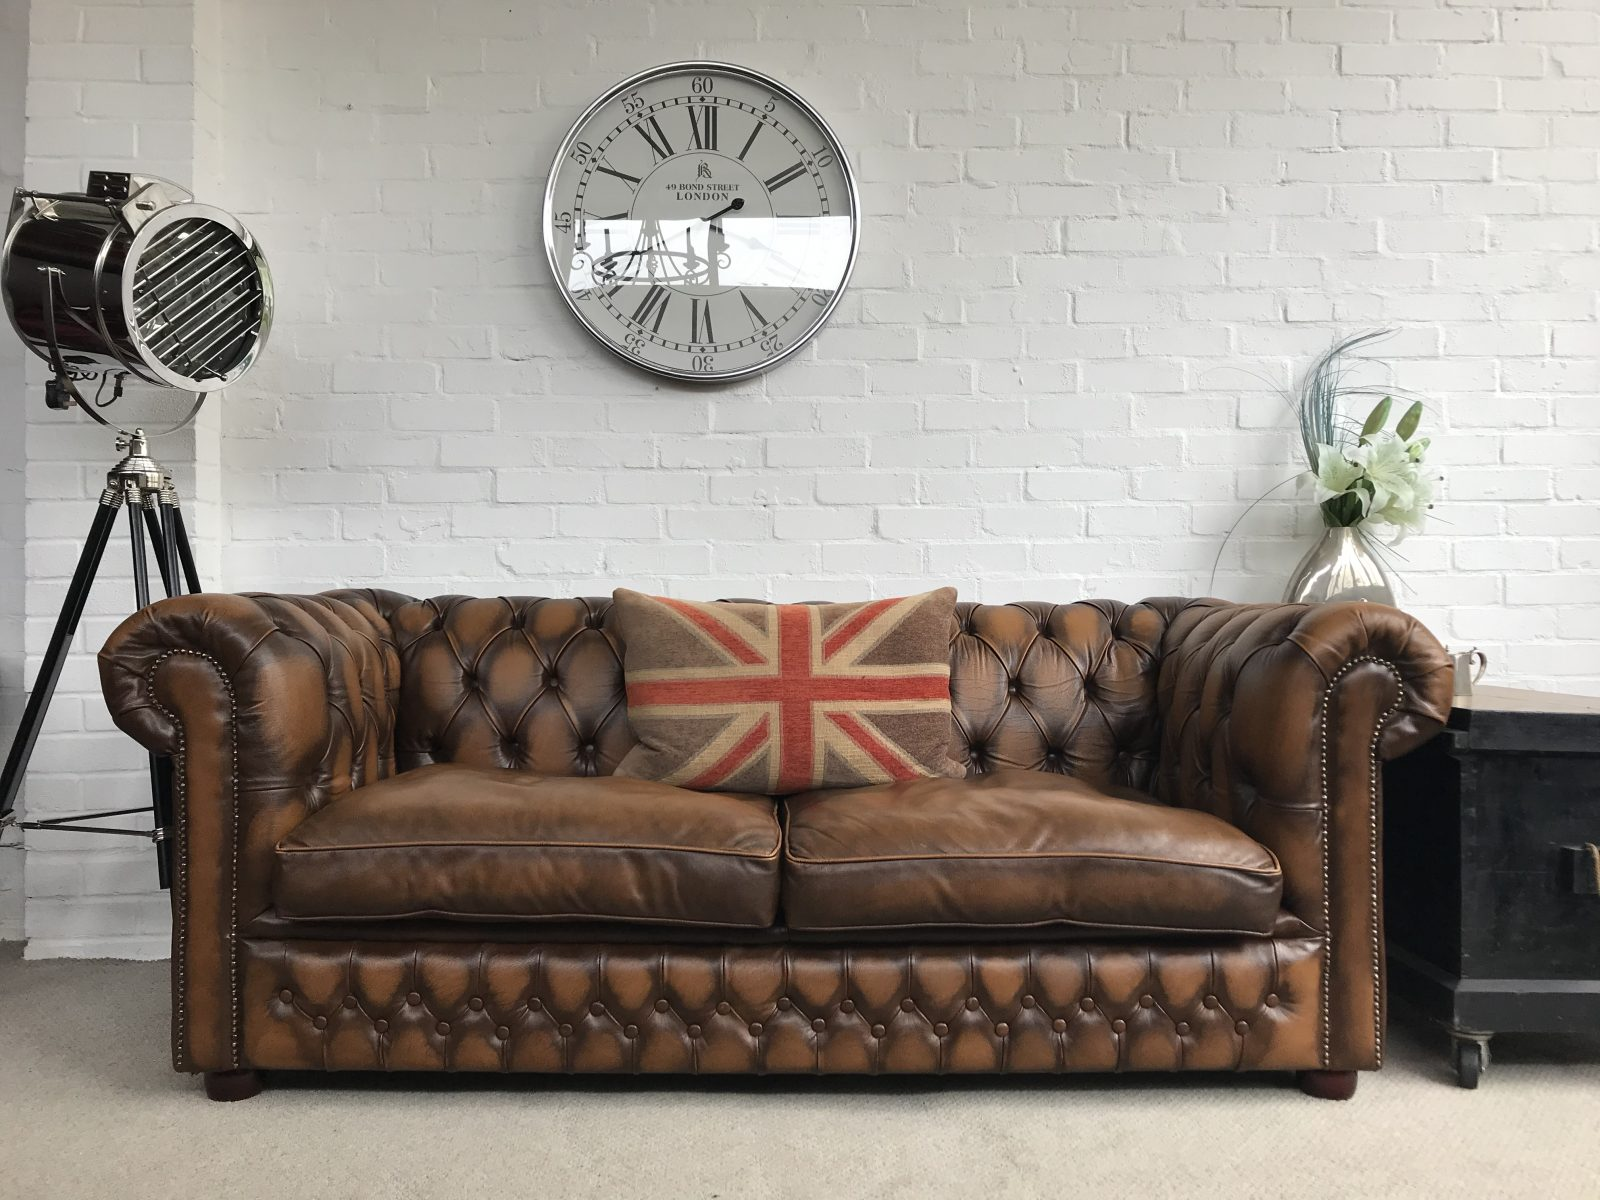 Stunning Golden Brown Chesterfield Sofa…..SOLD.